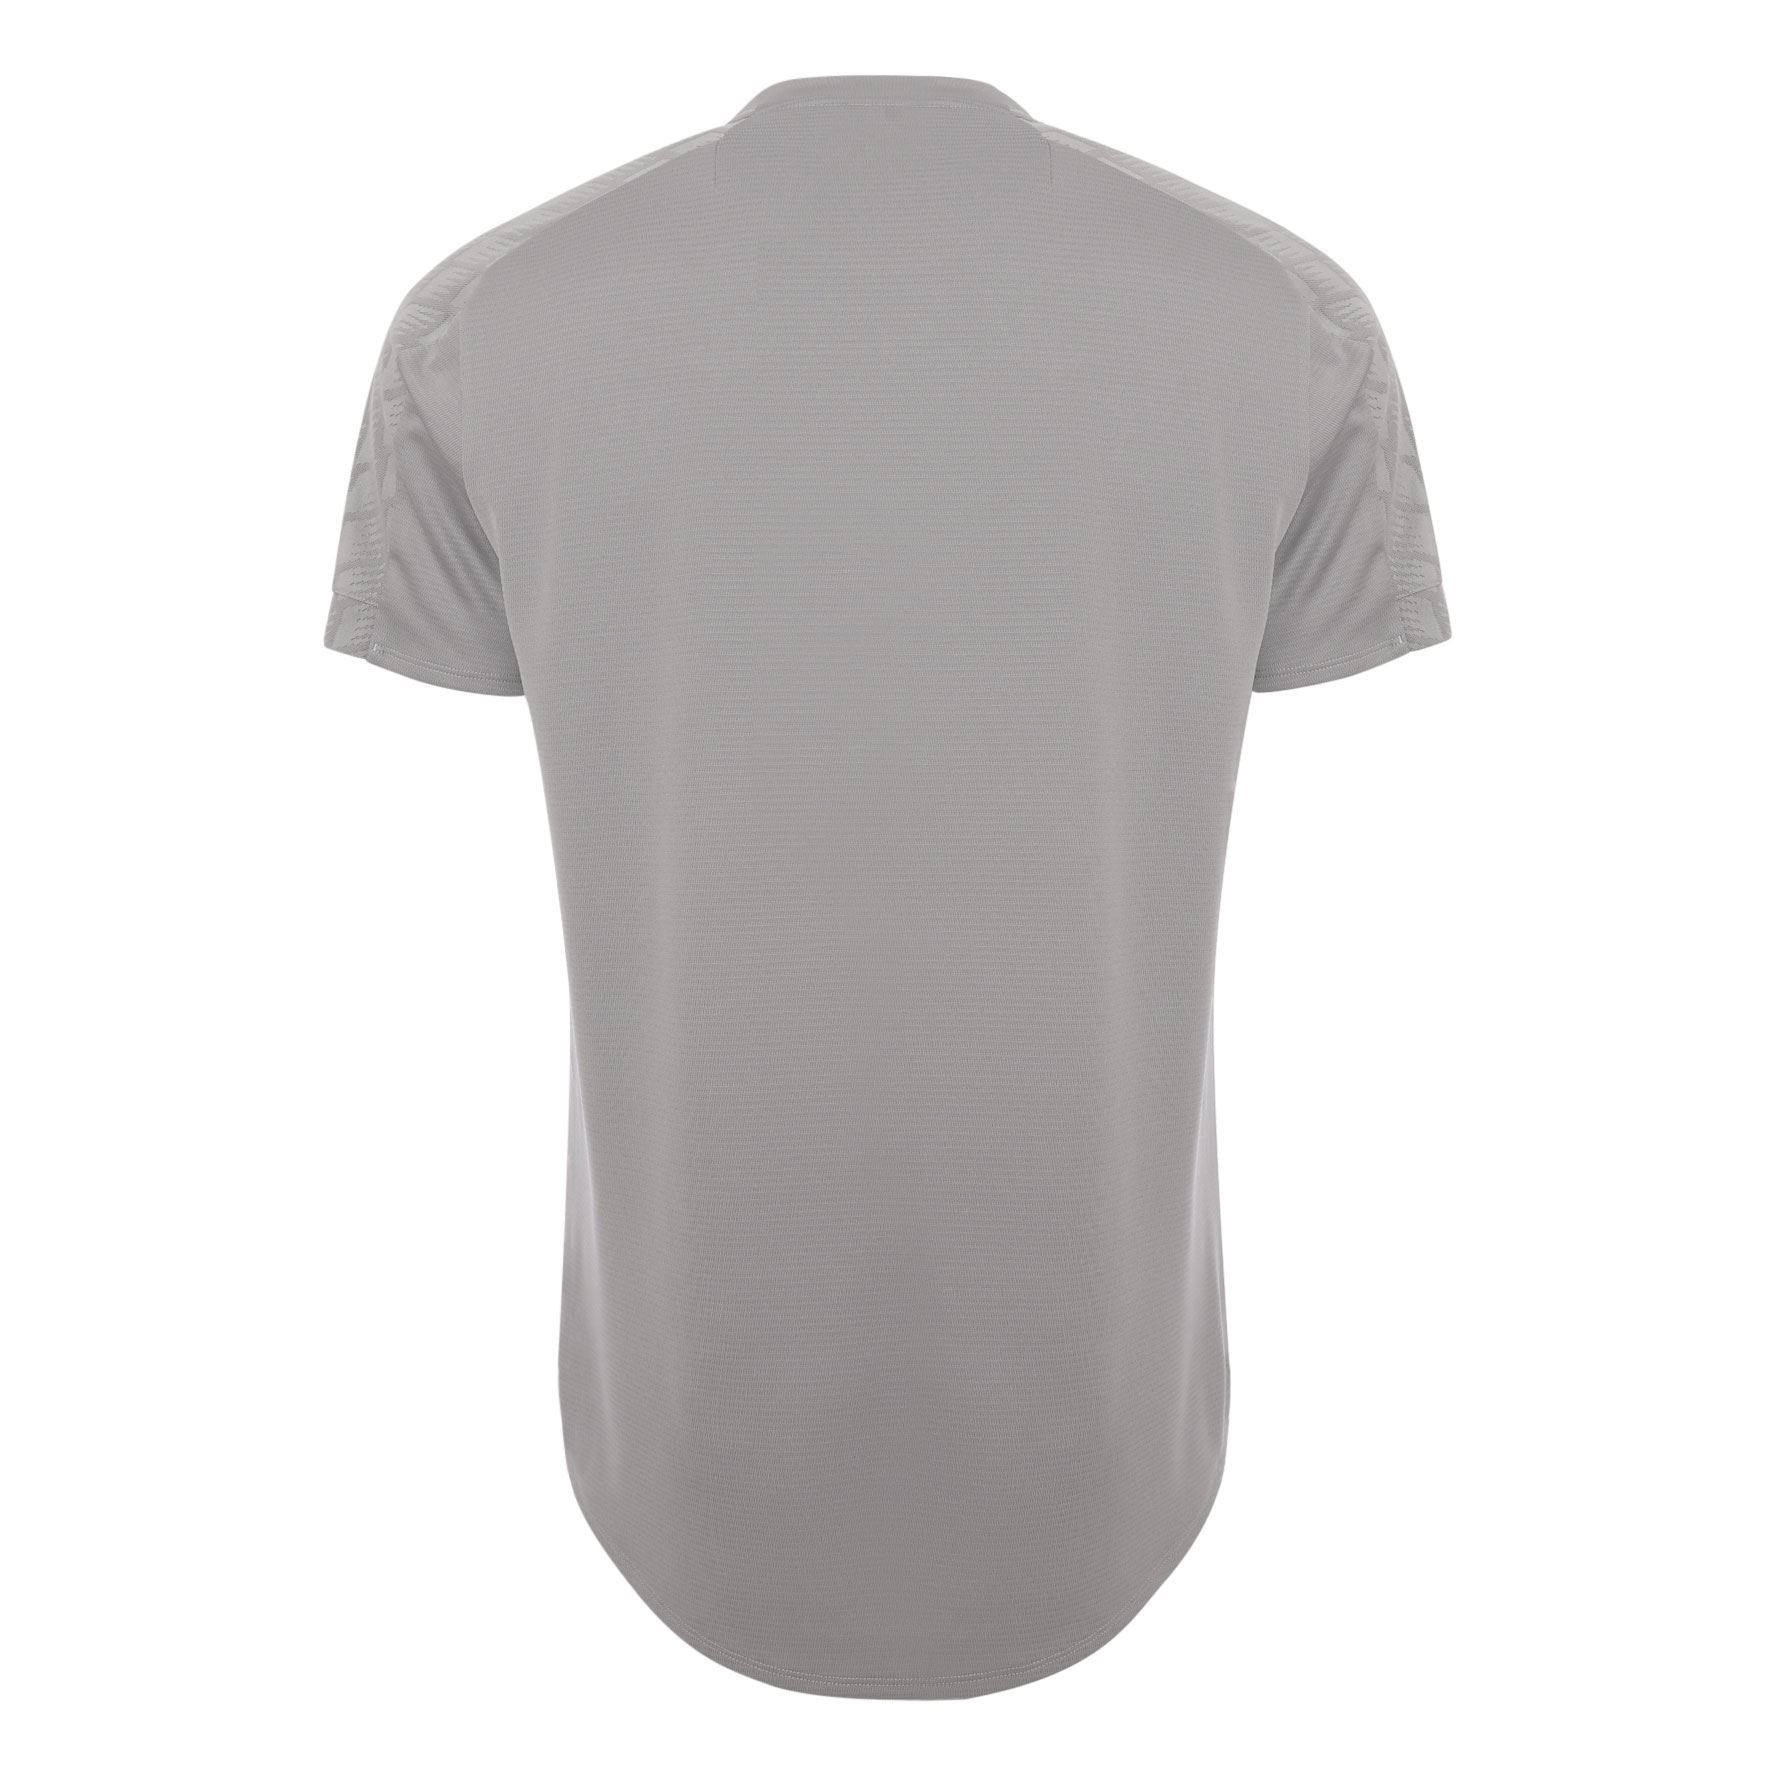 hot sales 1e97c f740a Details about Liverpool FC Mens Soccer Grey On Pitch Jersey 19/20 LFC  Official